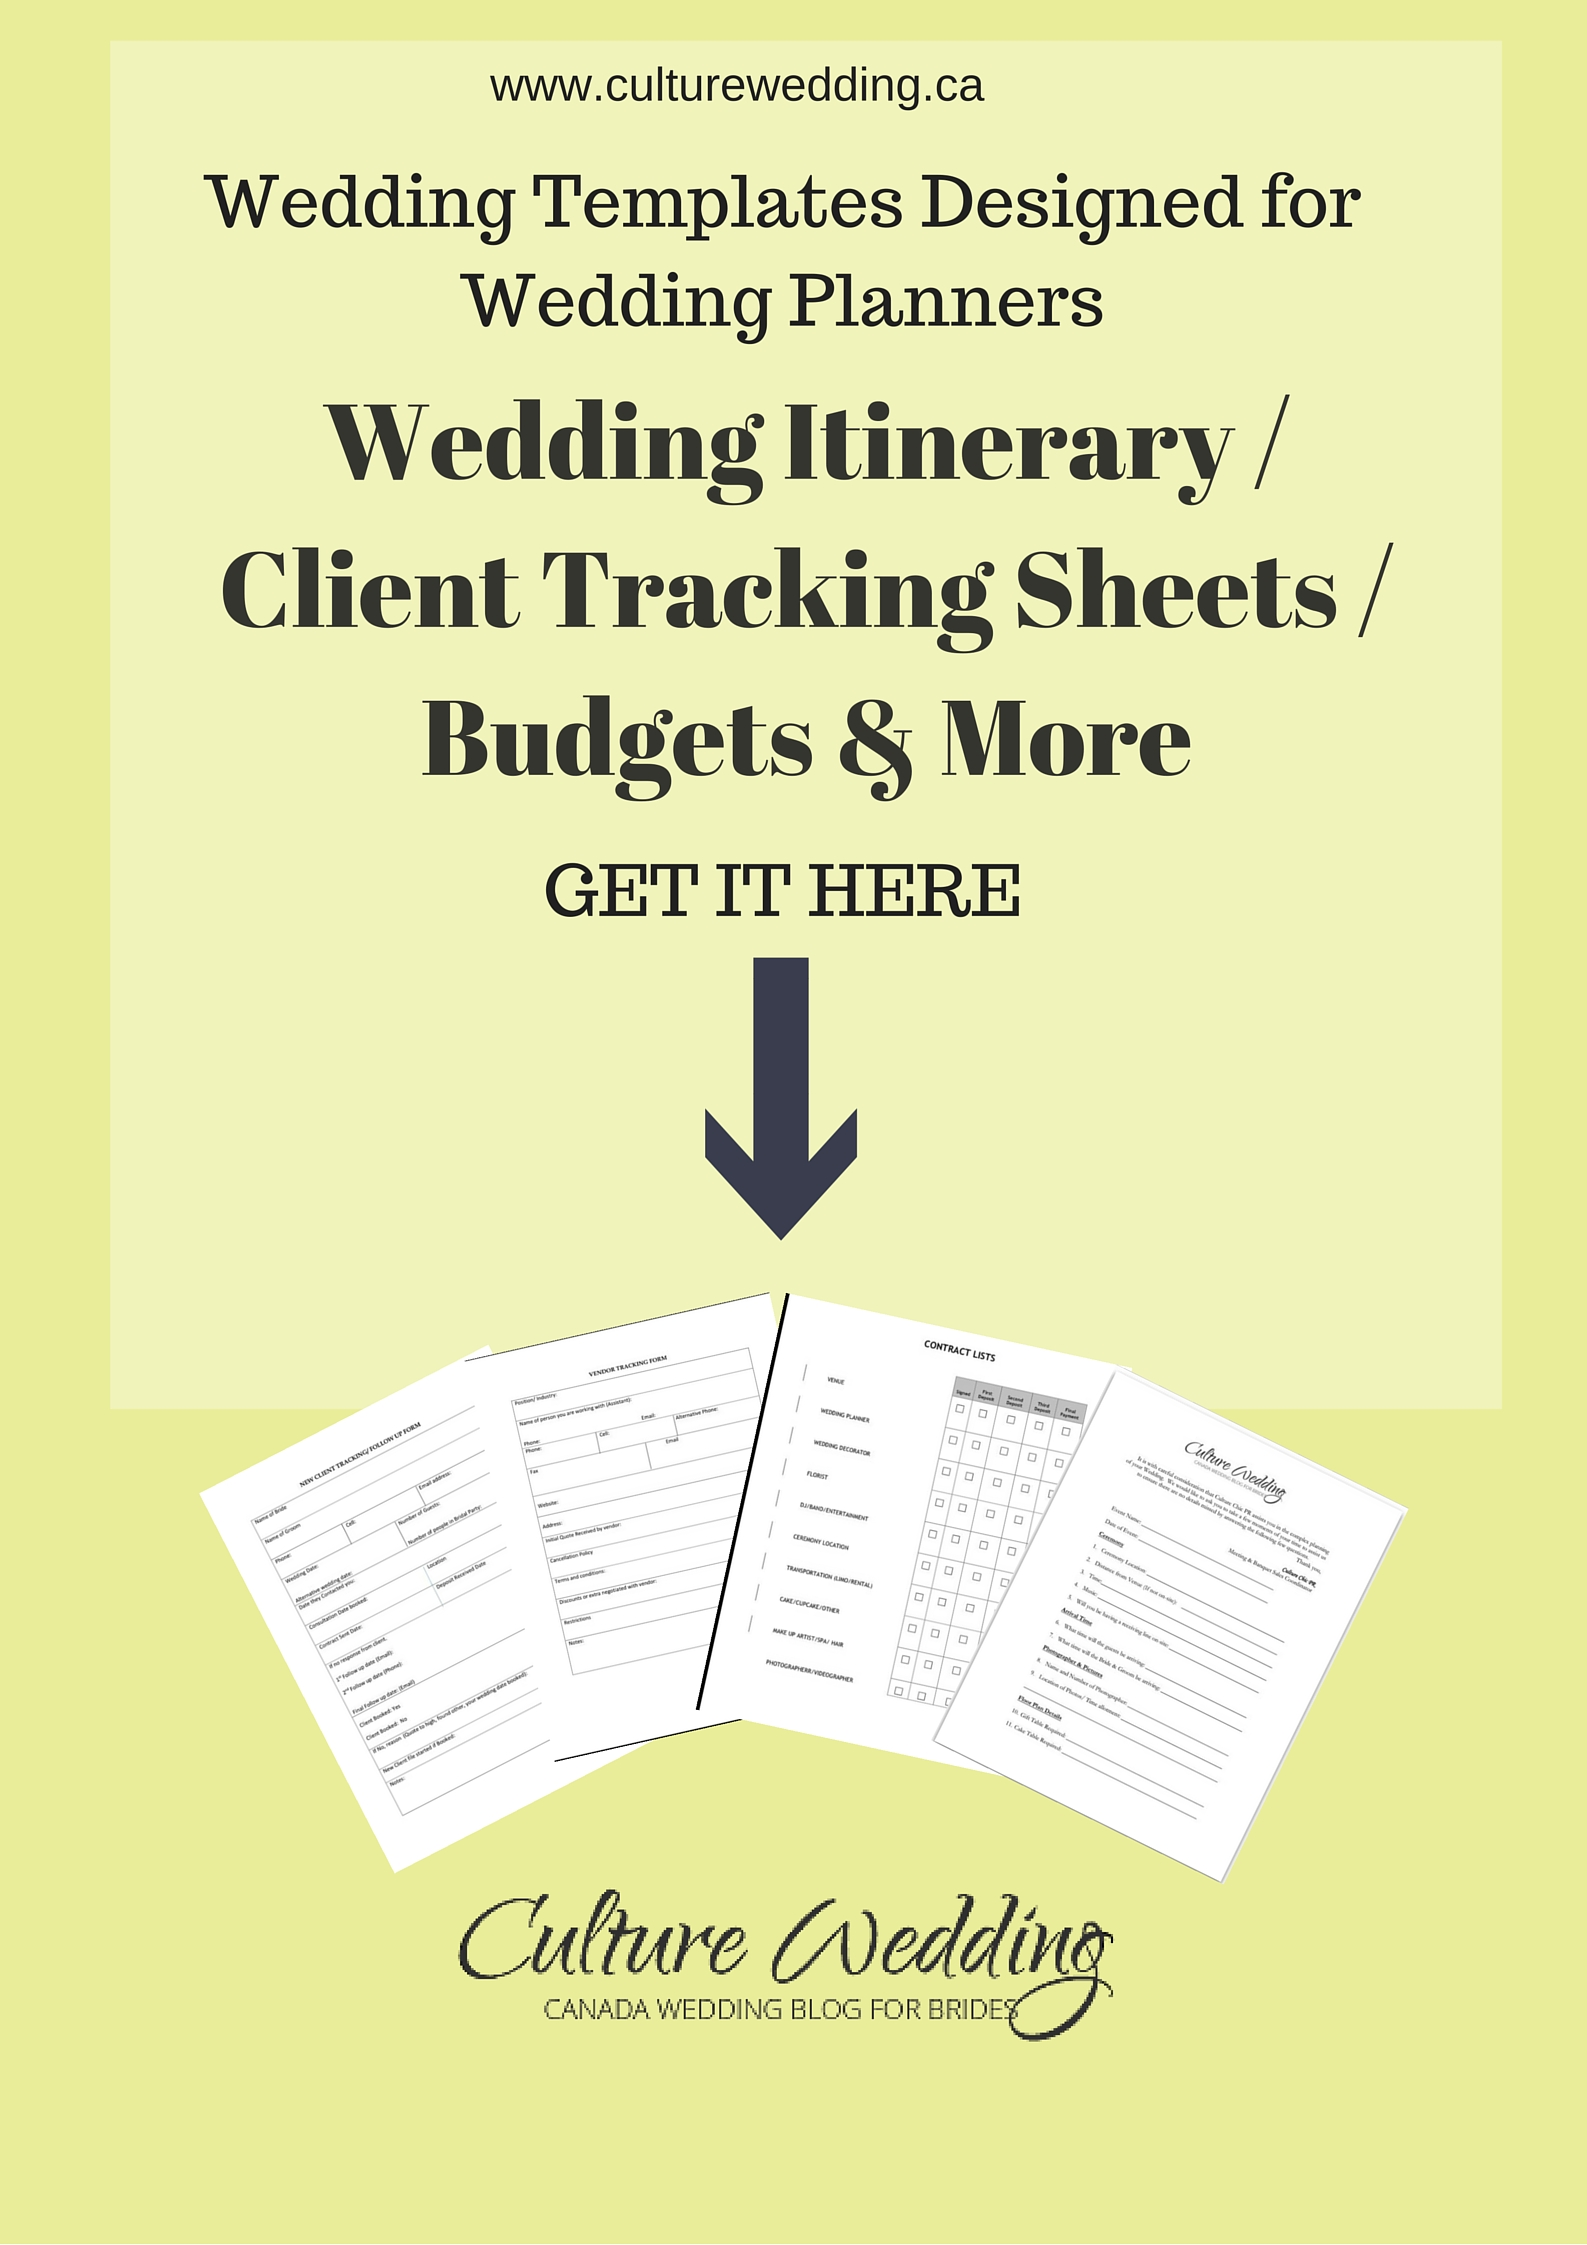 Wedding Templates To Use When Planning Your Clients Weddings We Have Included Budgets Client Forms And Tracking Get More Information On